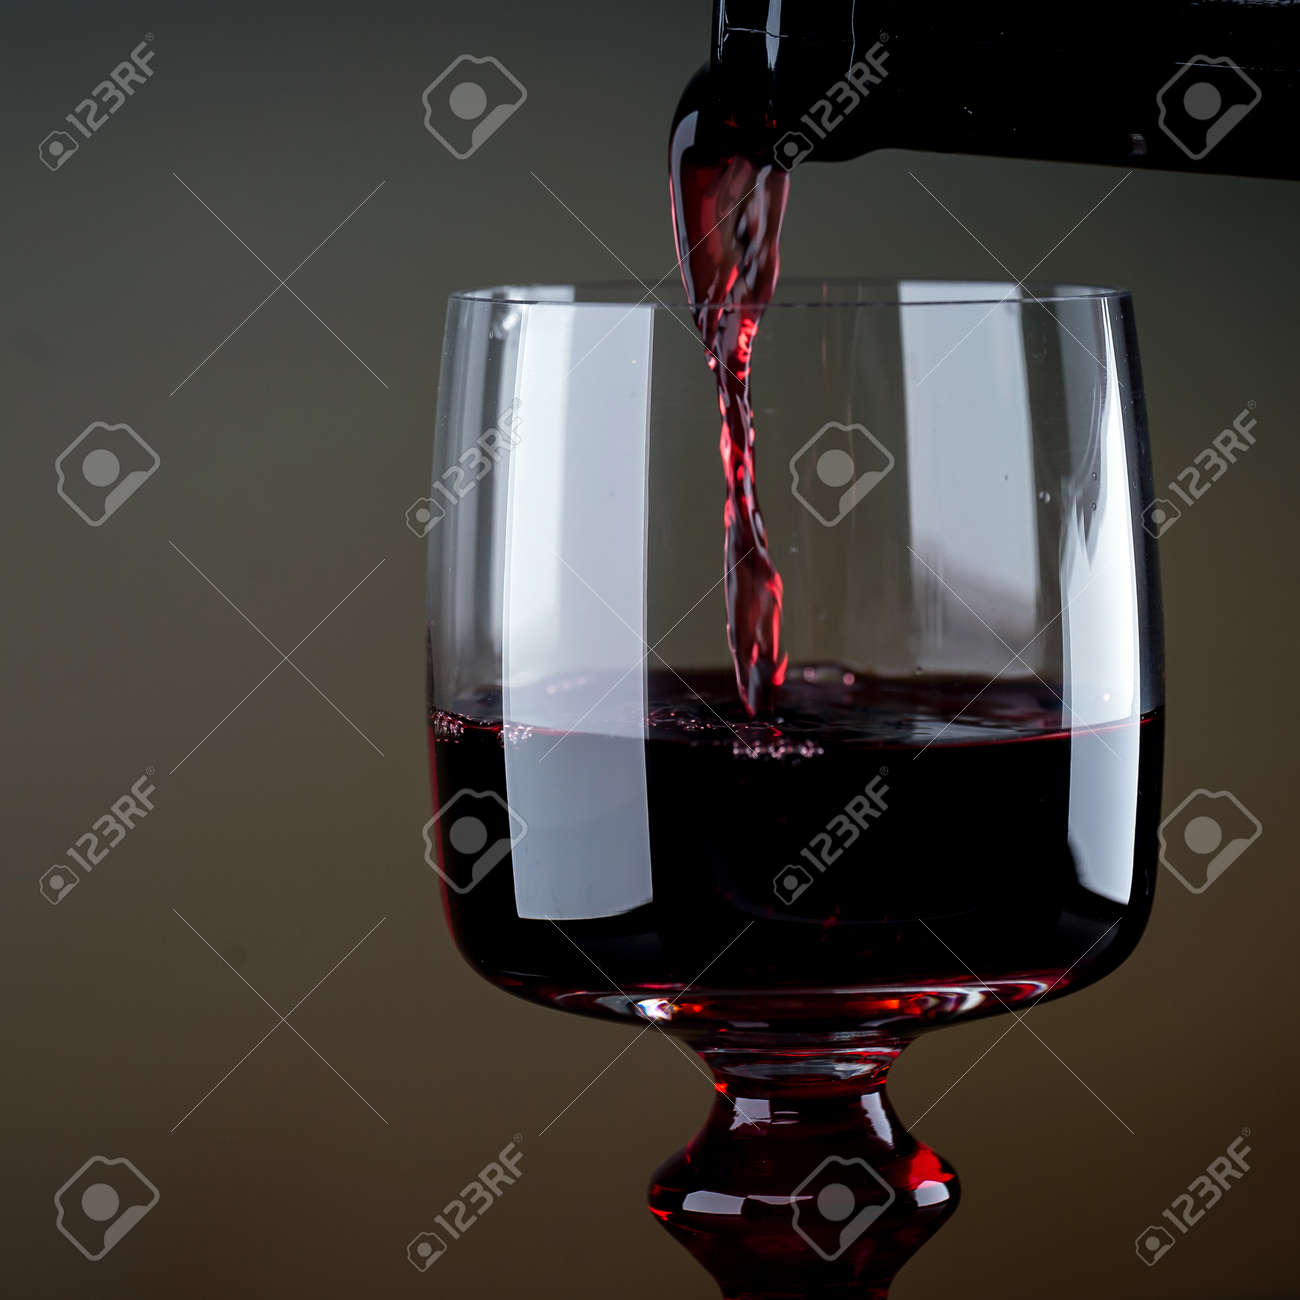 Cropped view sommelier pouring red wine from bottle into glass - 142549806